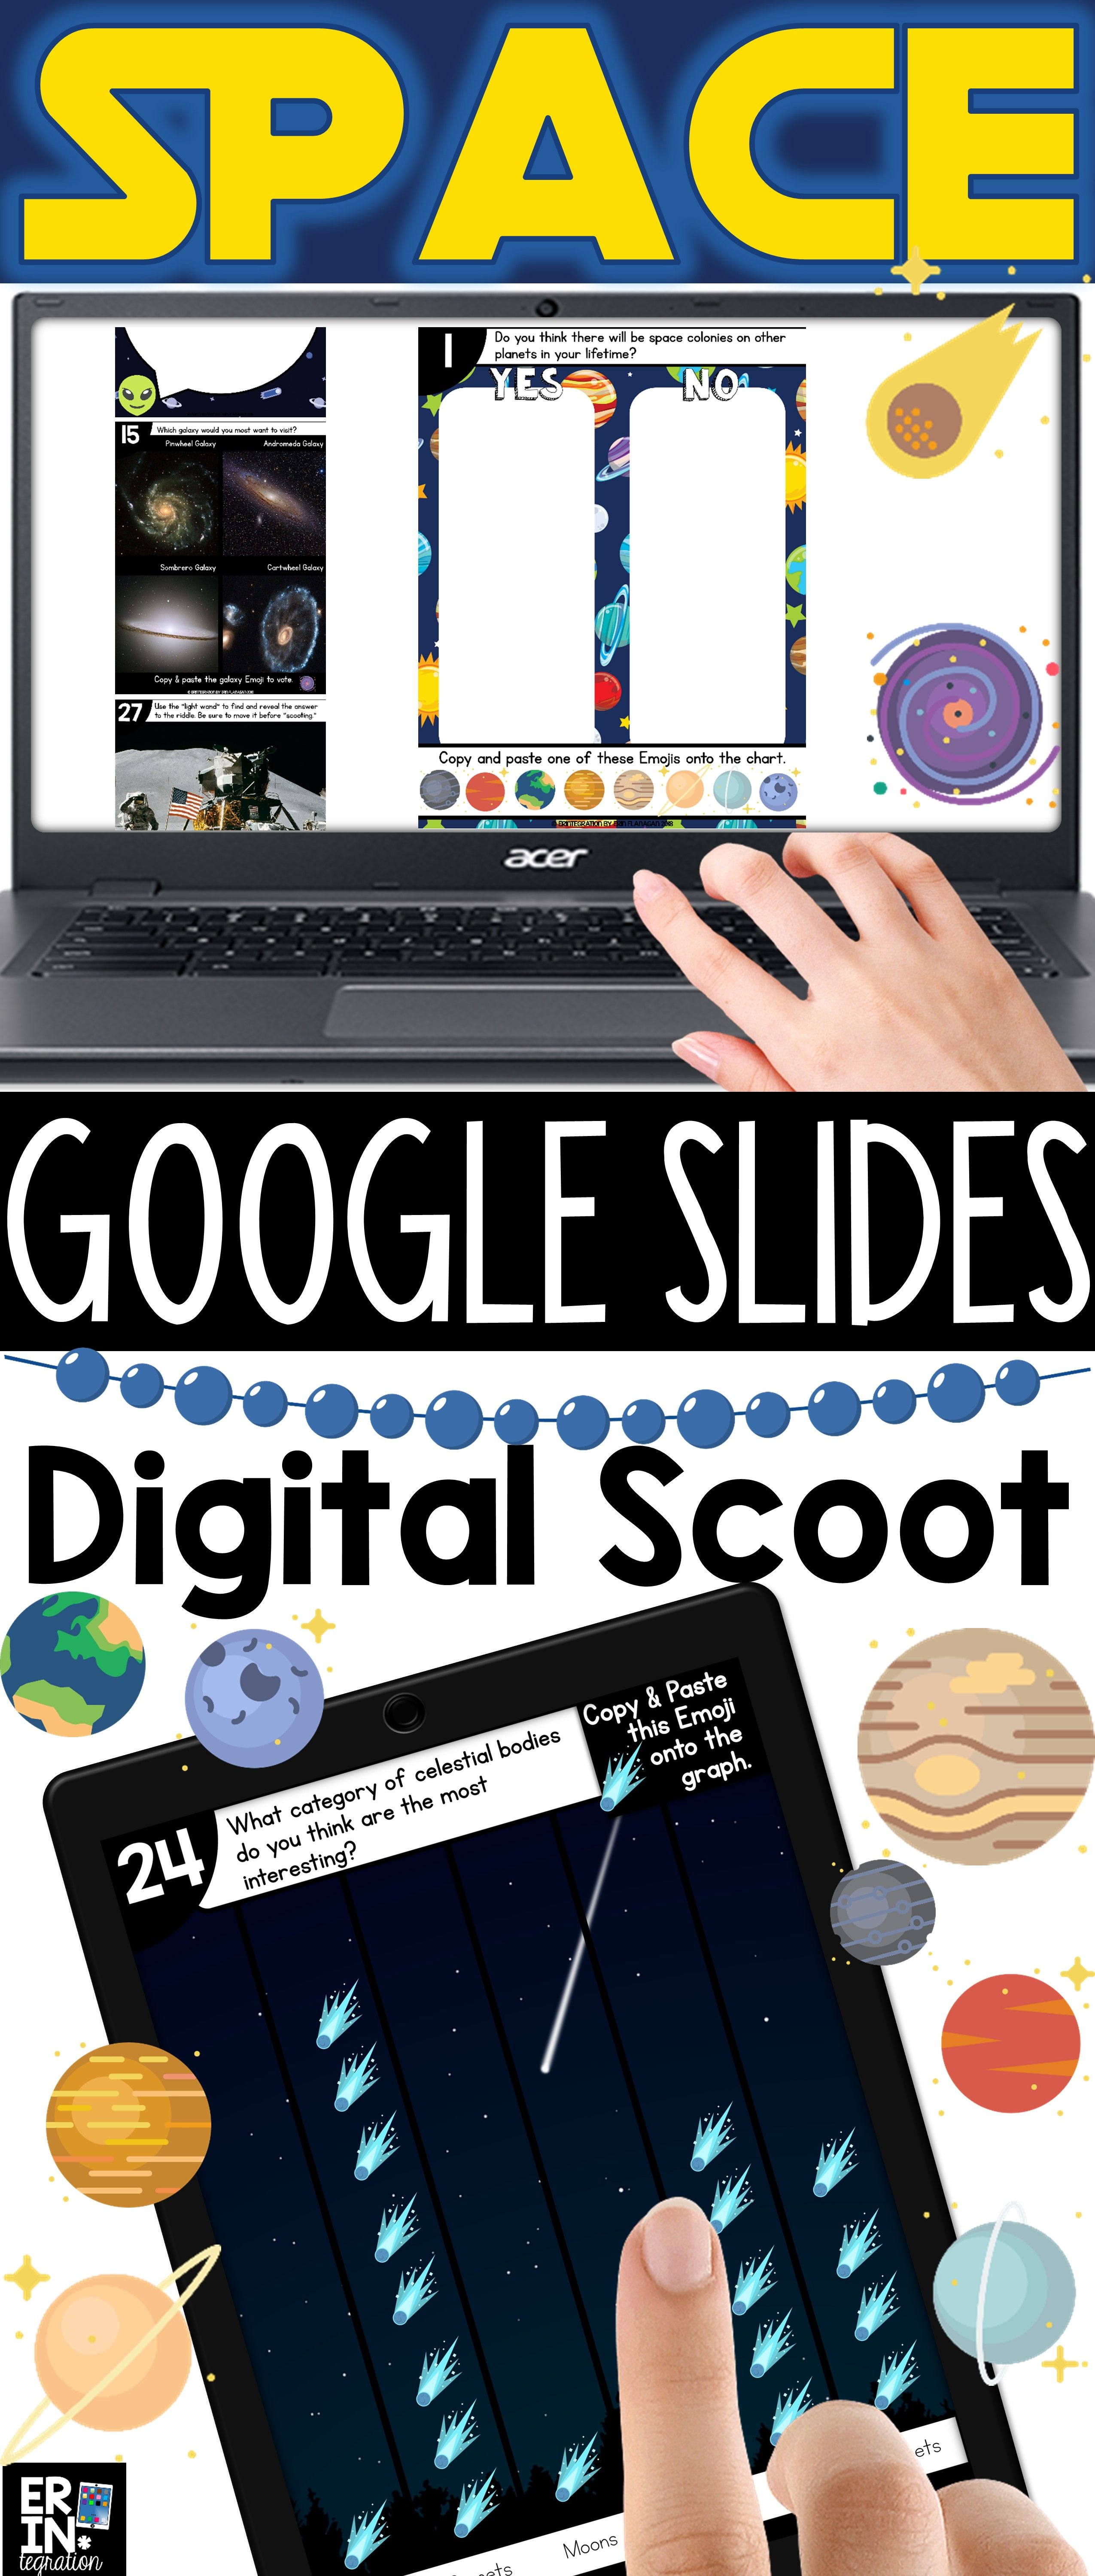 Space May 4th Slides Digital Scoot